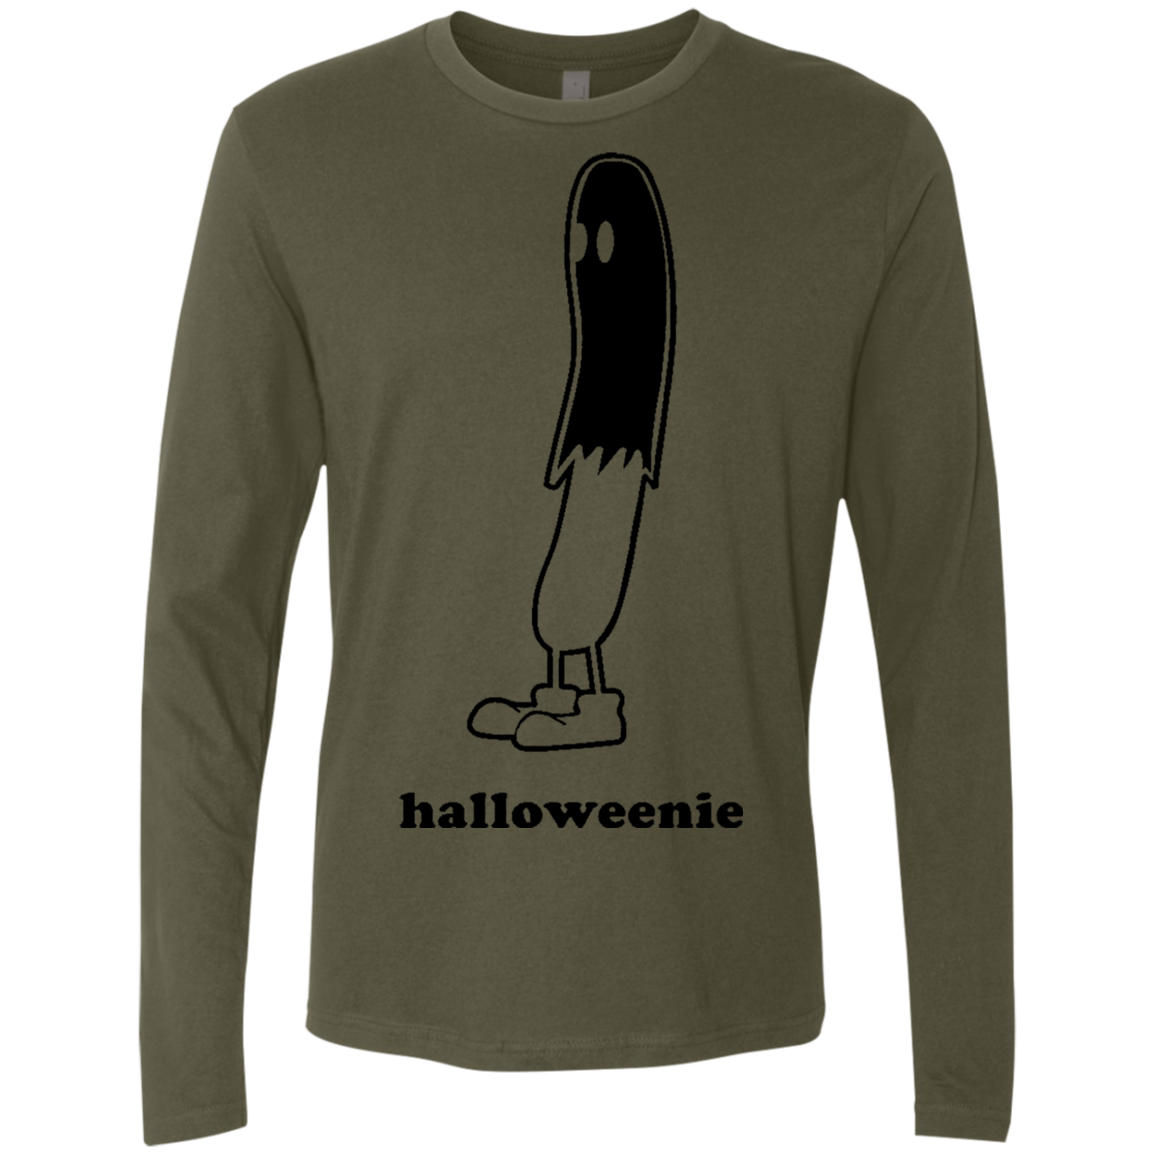 Halloweenie Men's Long Sleeve Tee